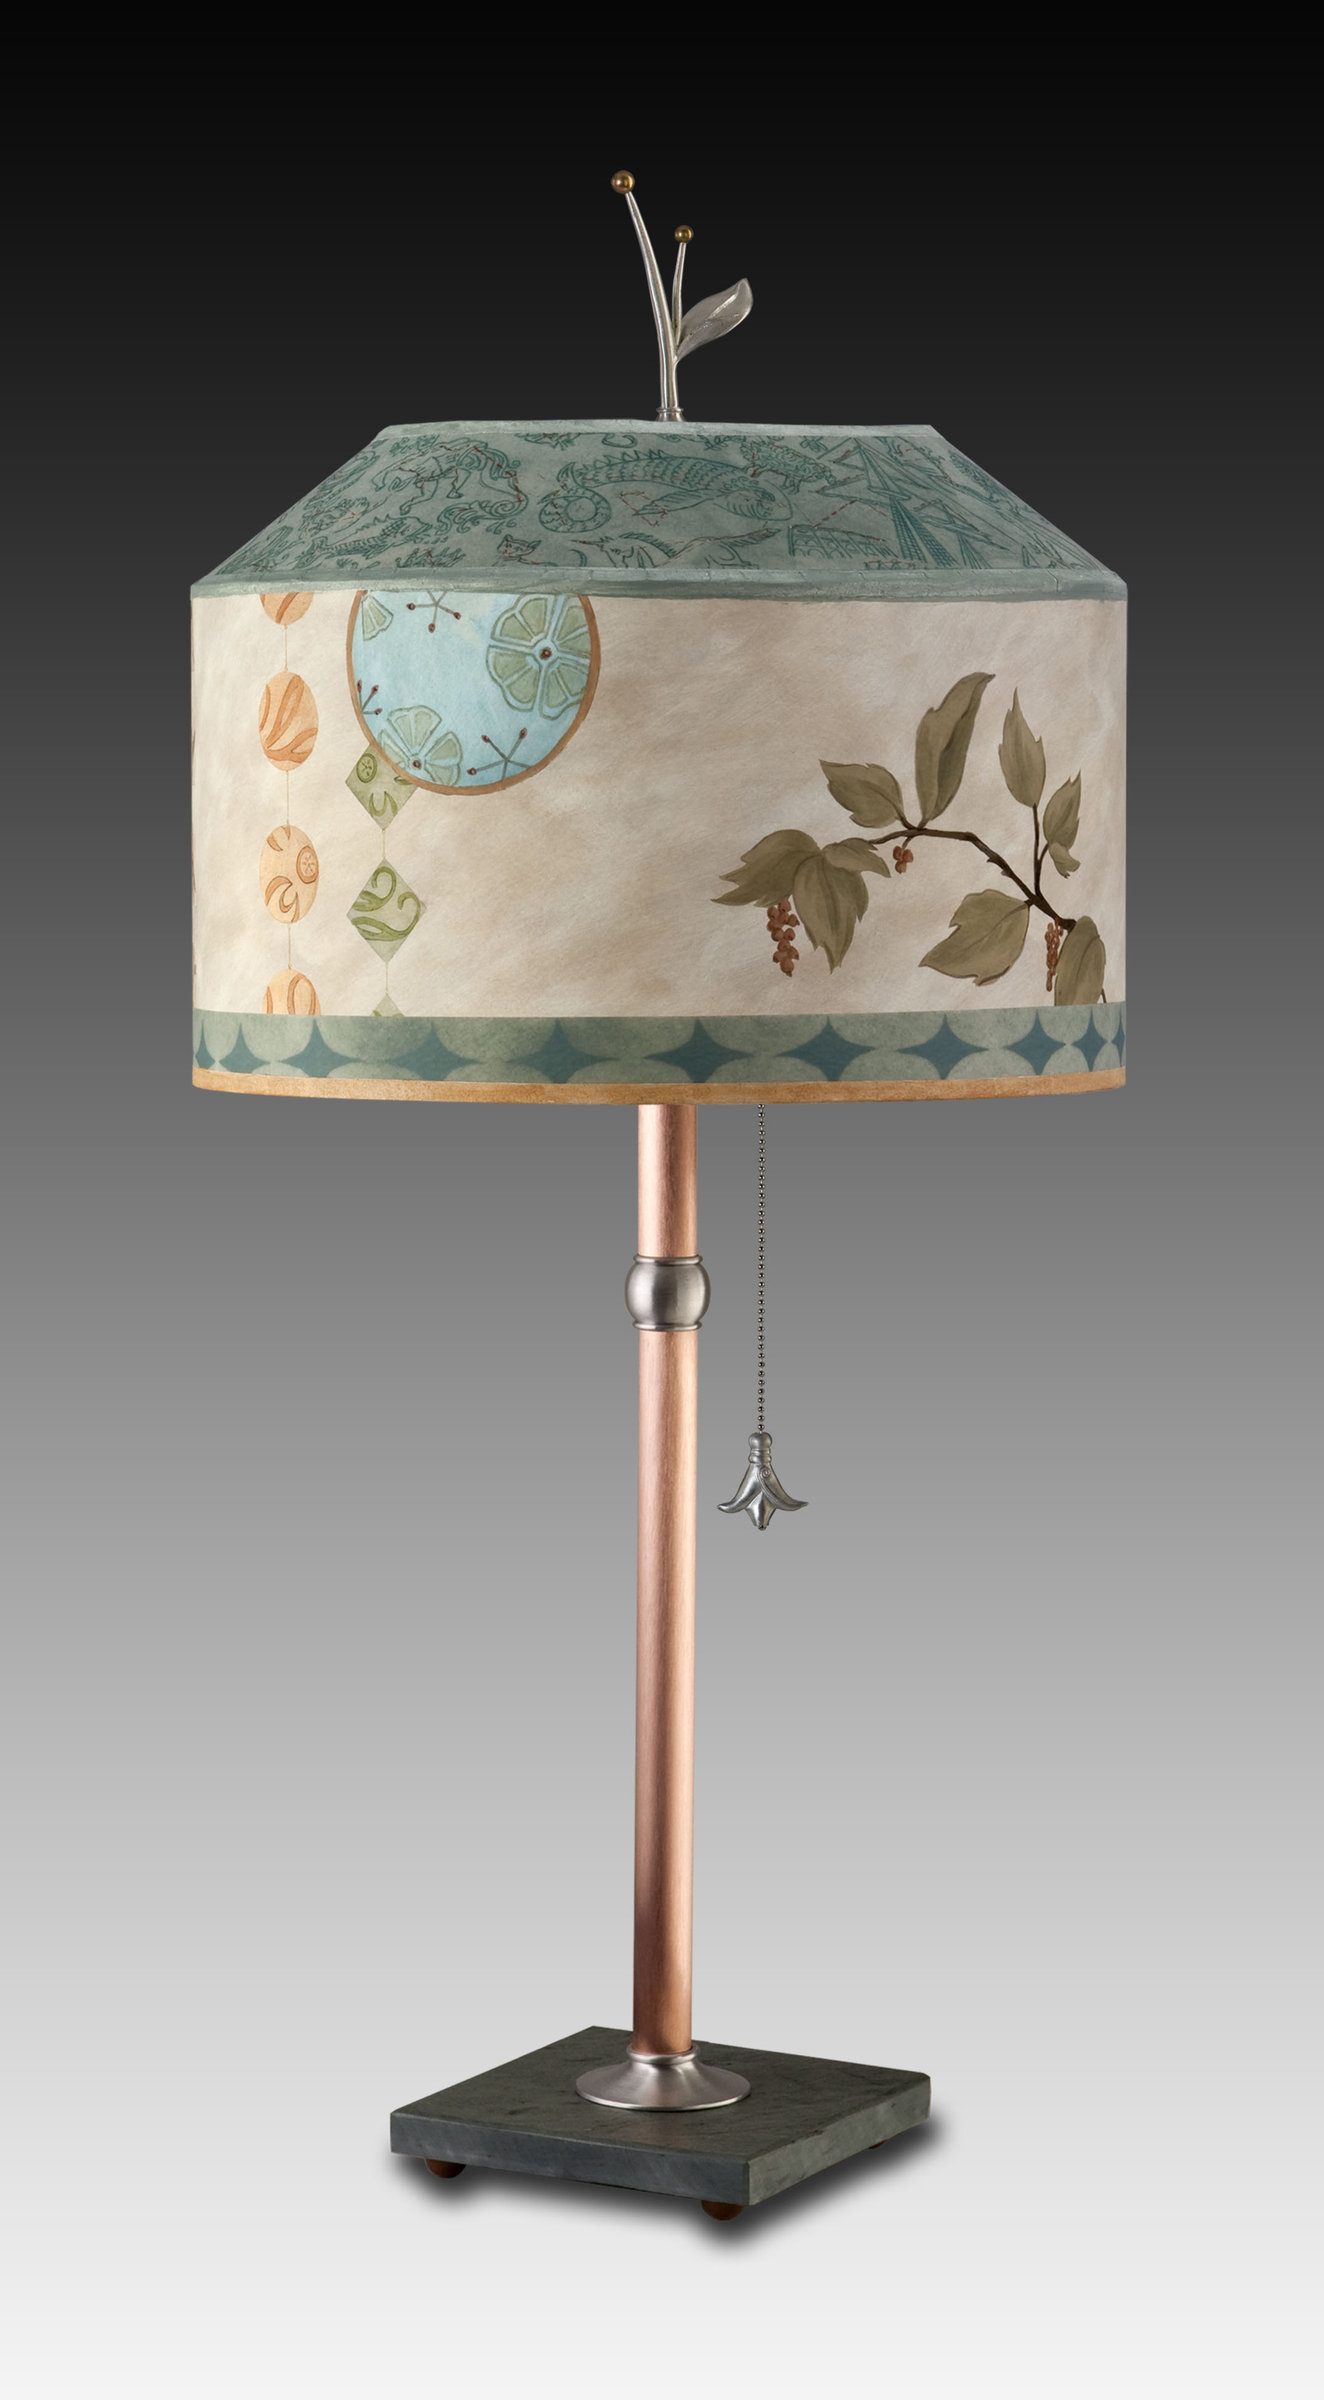 Celestial Leaf - Mixed Media Table Lamp - by Janna Ugone and Justin Thomas